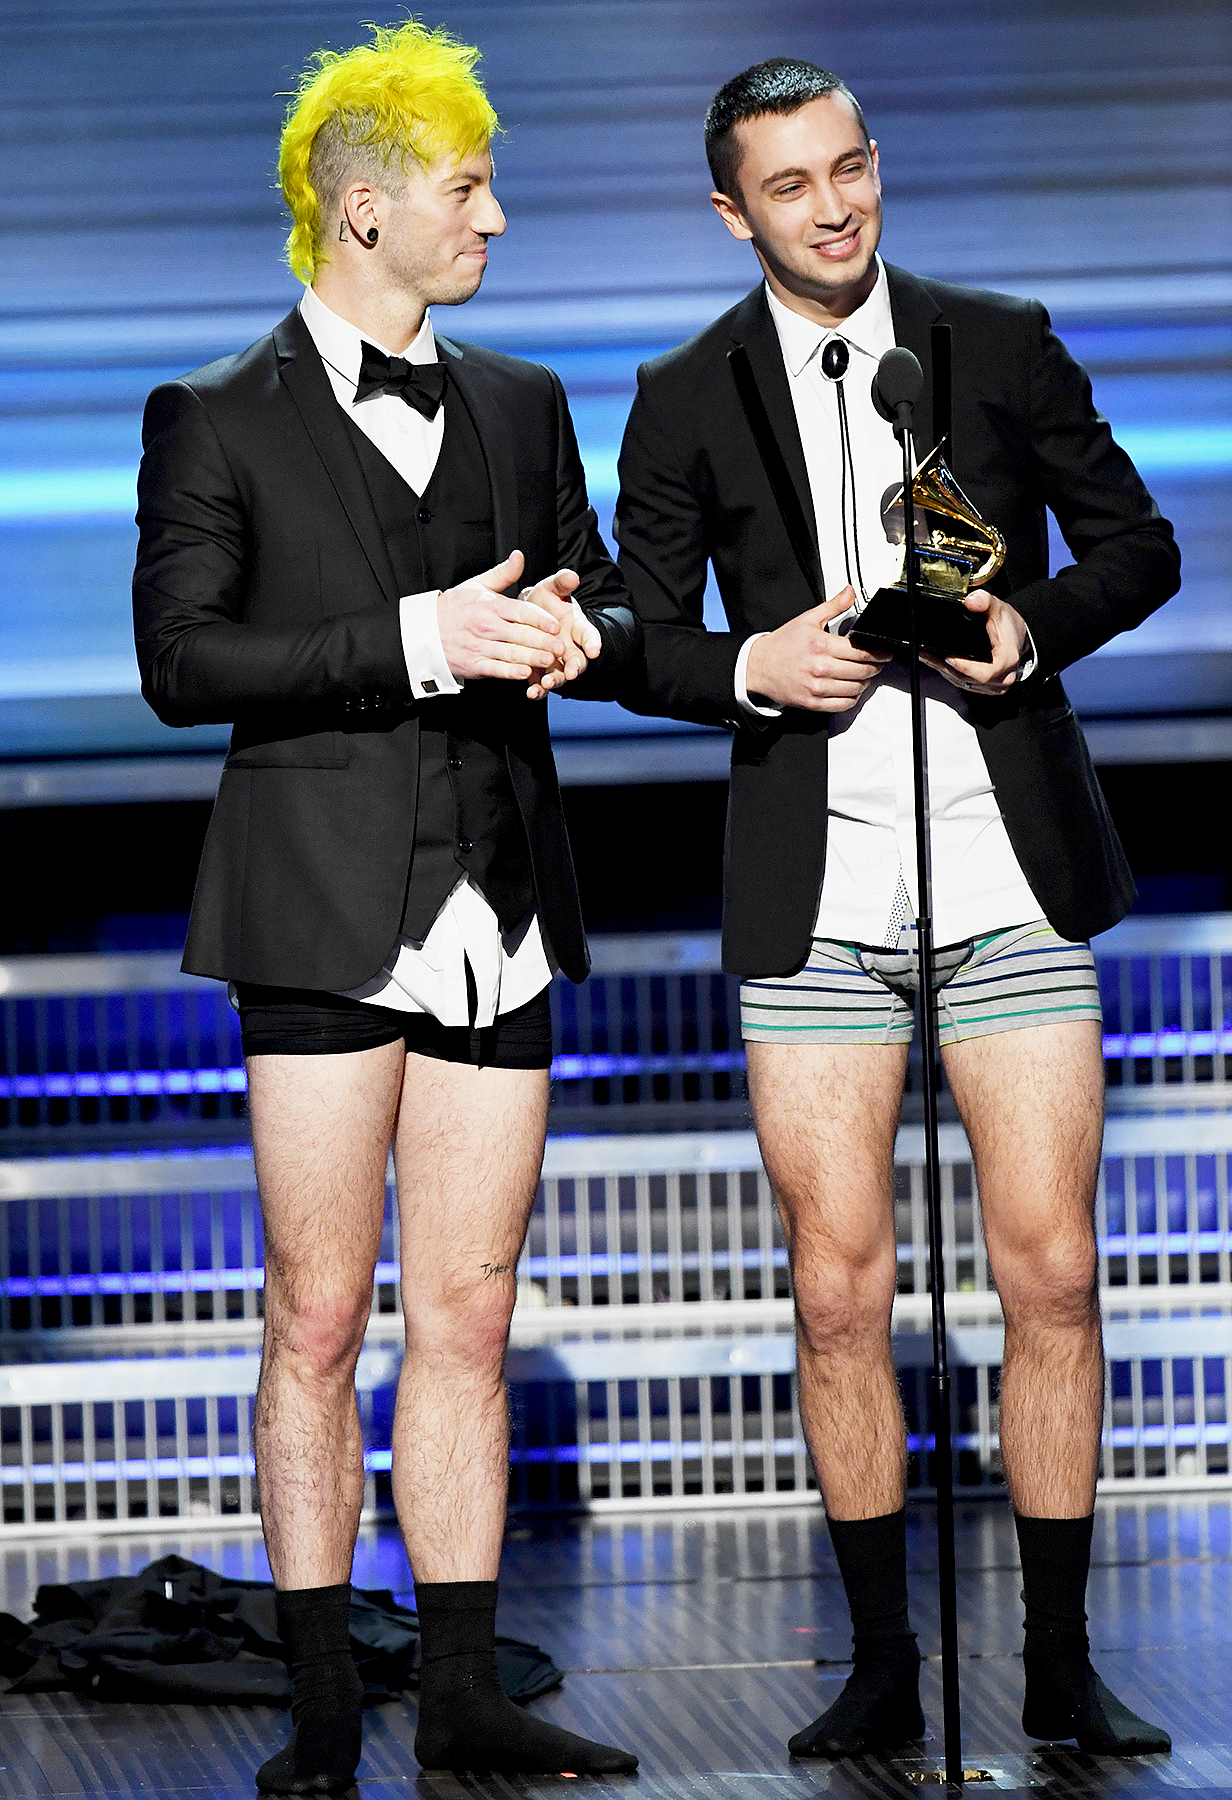 Josh Dun (L) and Tyler Joseph of music group Twenty One Pilots accept the Best Pop Duo/Group Performance award for 'Stressed Out' onstage during The 59th GRAMMY Awards at STAPLES Center on February 12, 2017 in Los Angeles, California.